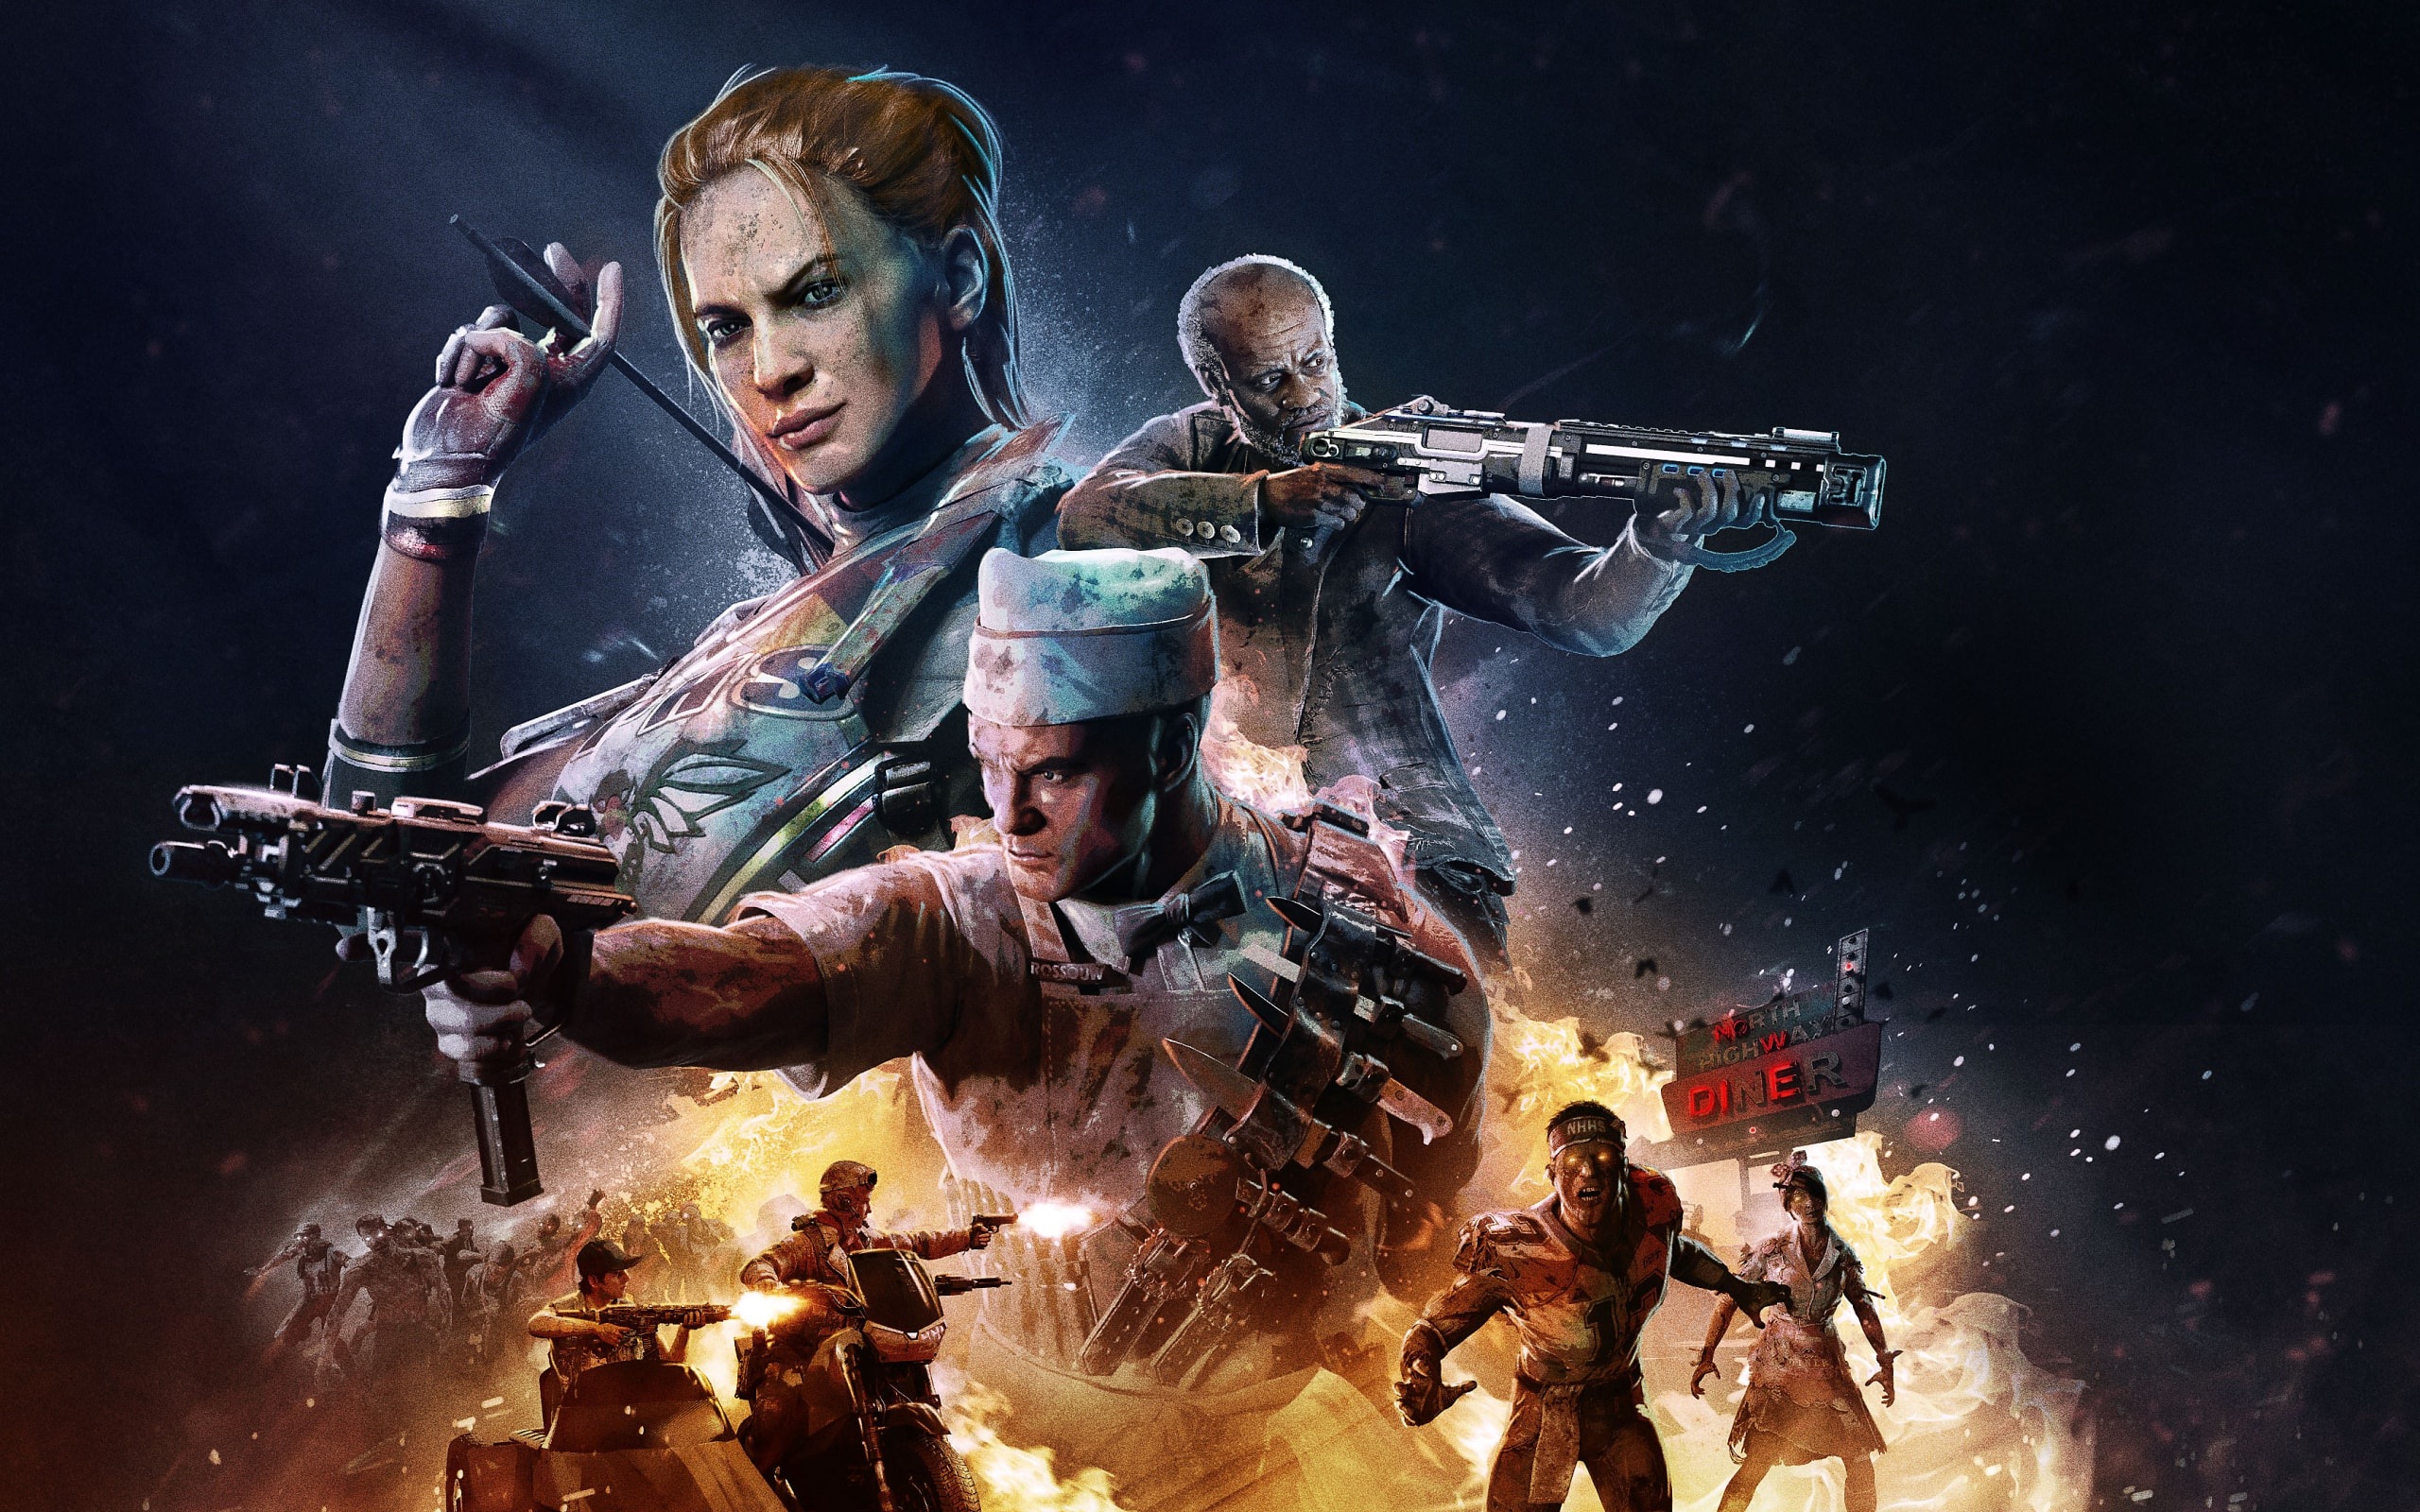 Wallpaper Of Video Game Call Of Duty Call Of Duty Black